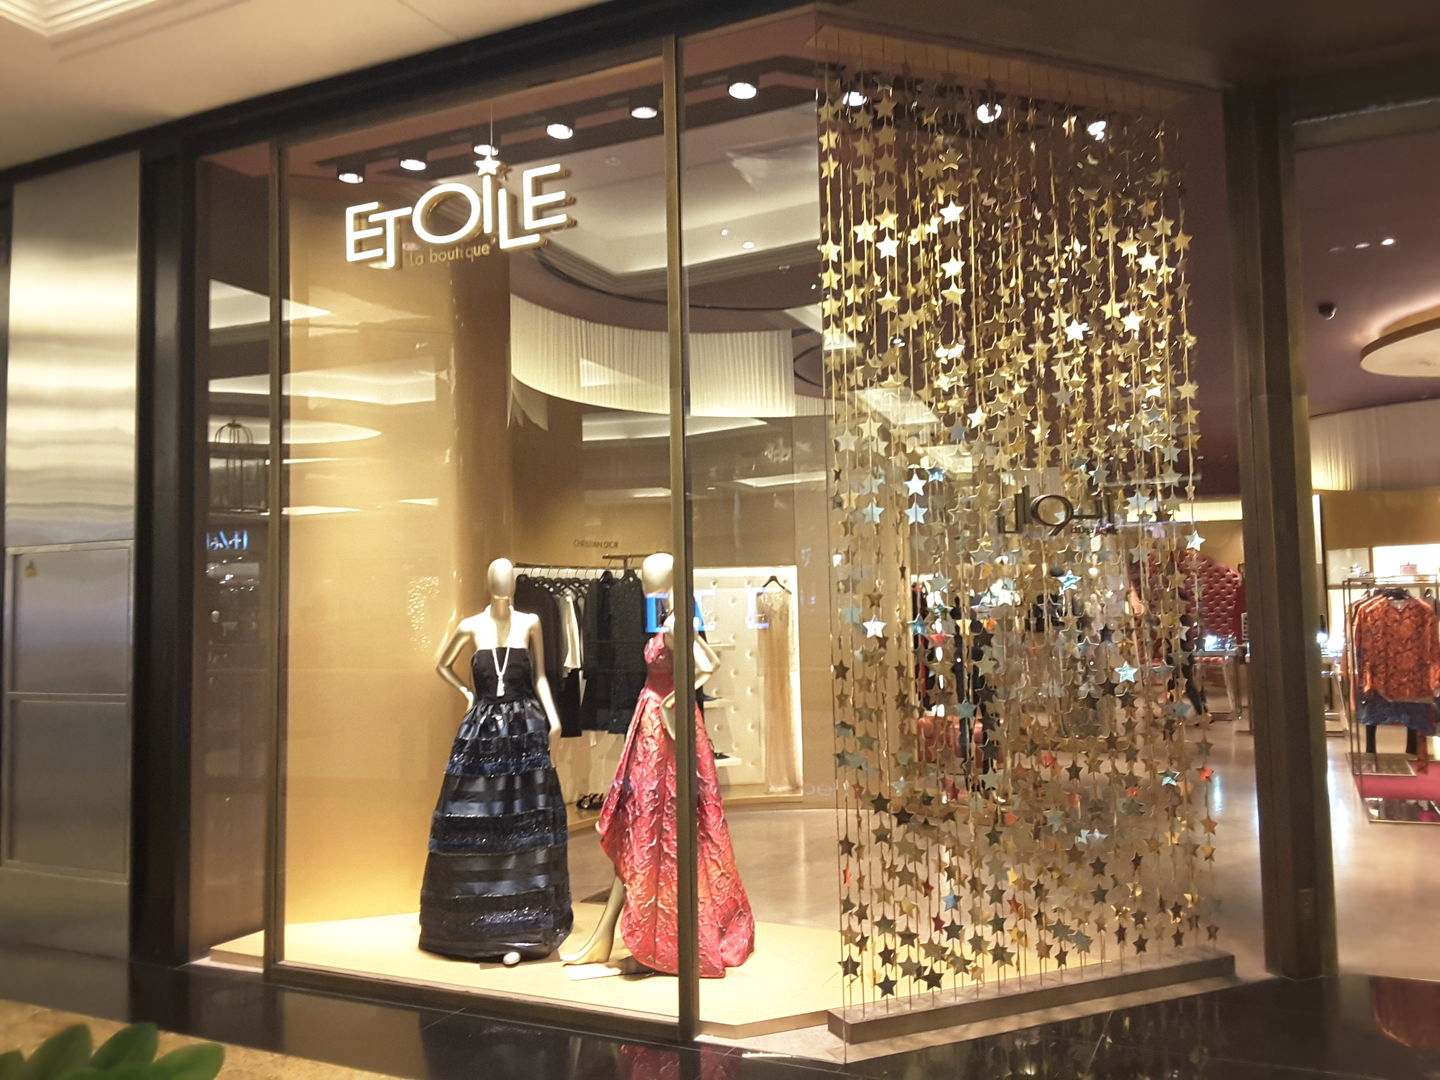 HiDubai-business-etoile-la-boutique-shopping-apparel-al-barsha-1-dubai-2